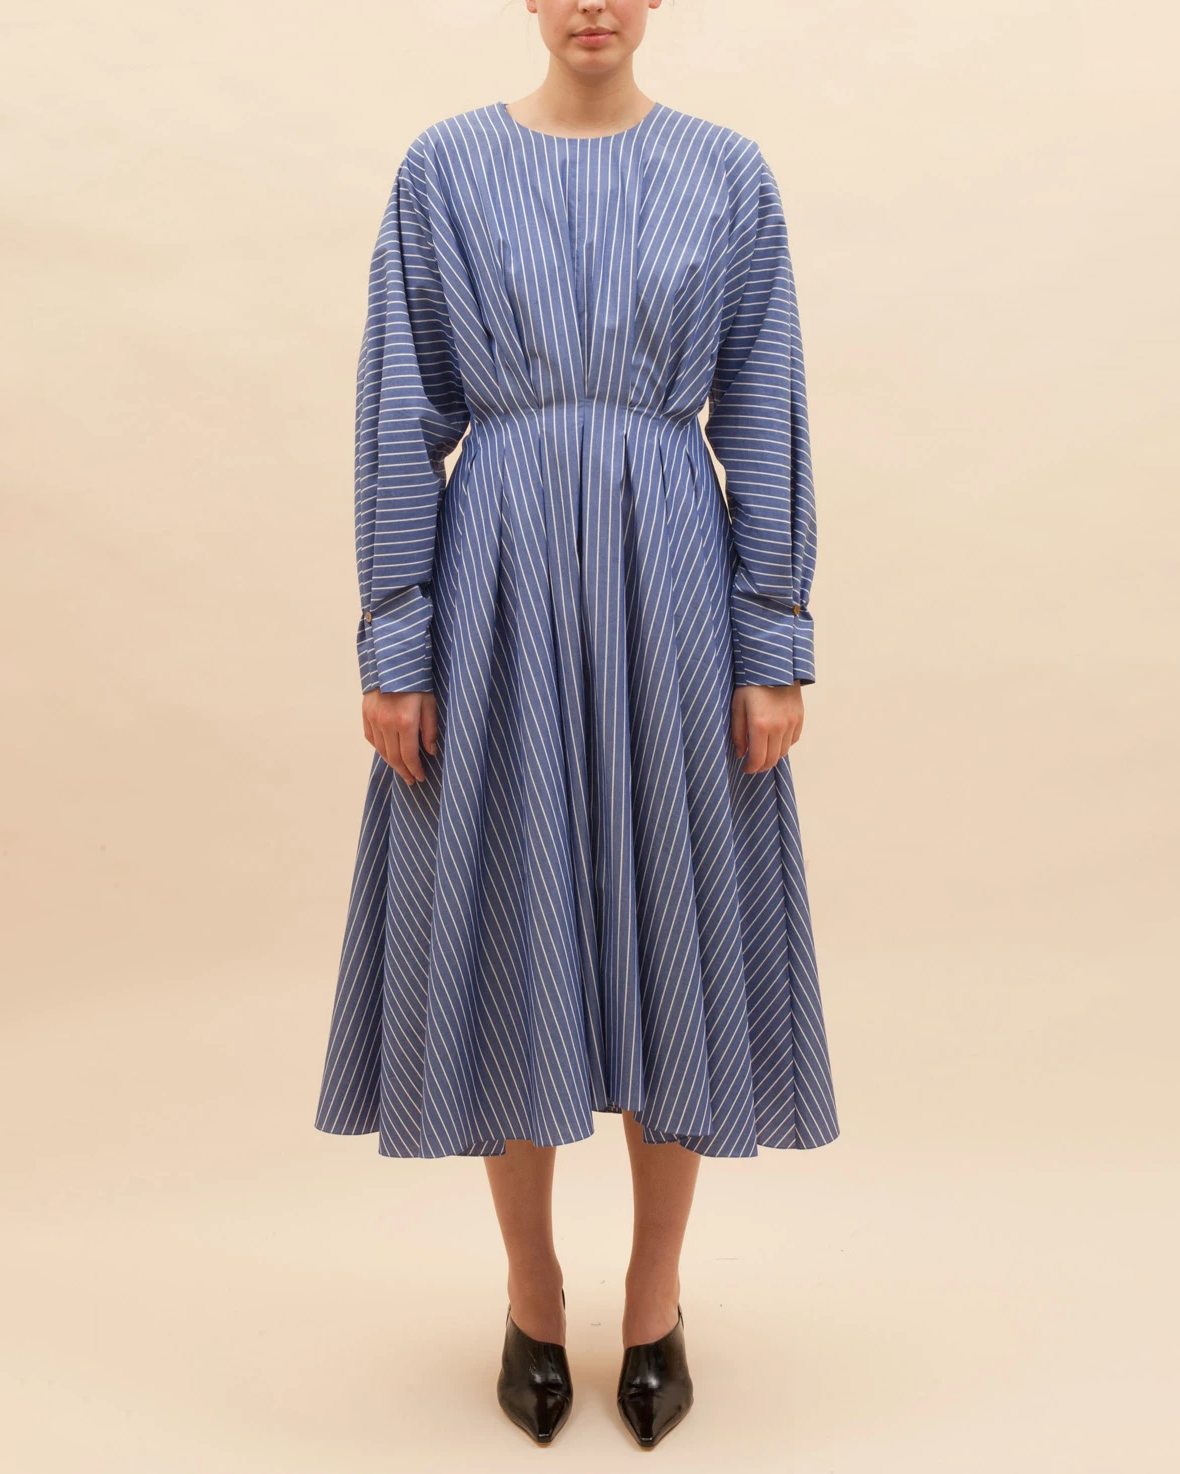 Alice Dress Cotton Stripe Dark Blue - SPECIAL PRICE